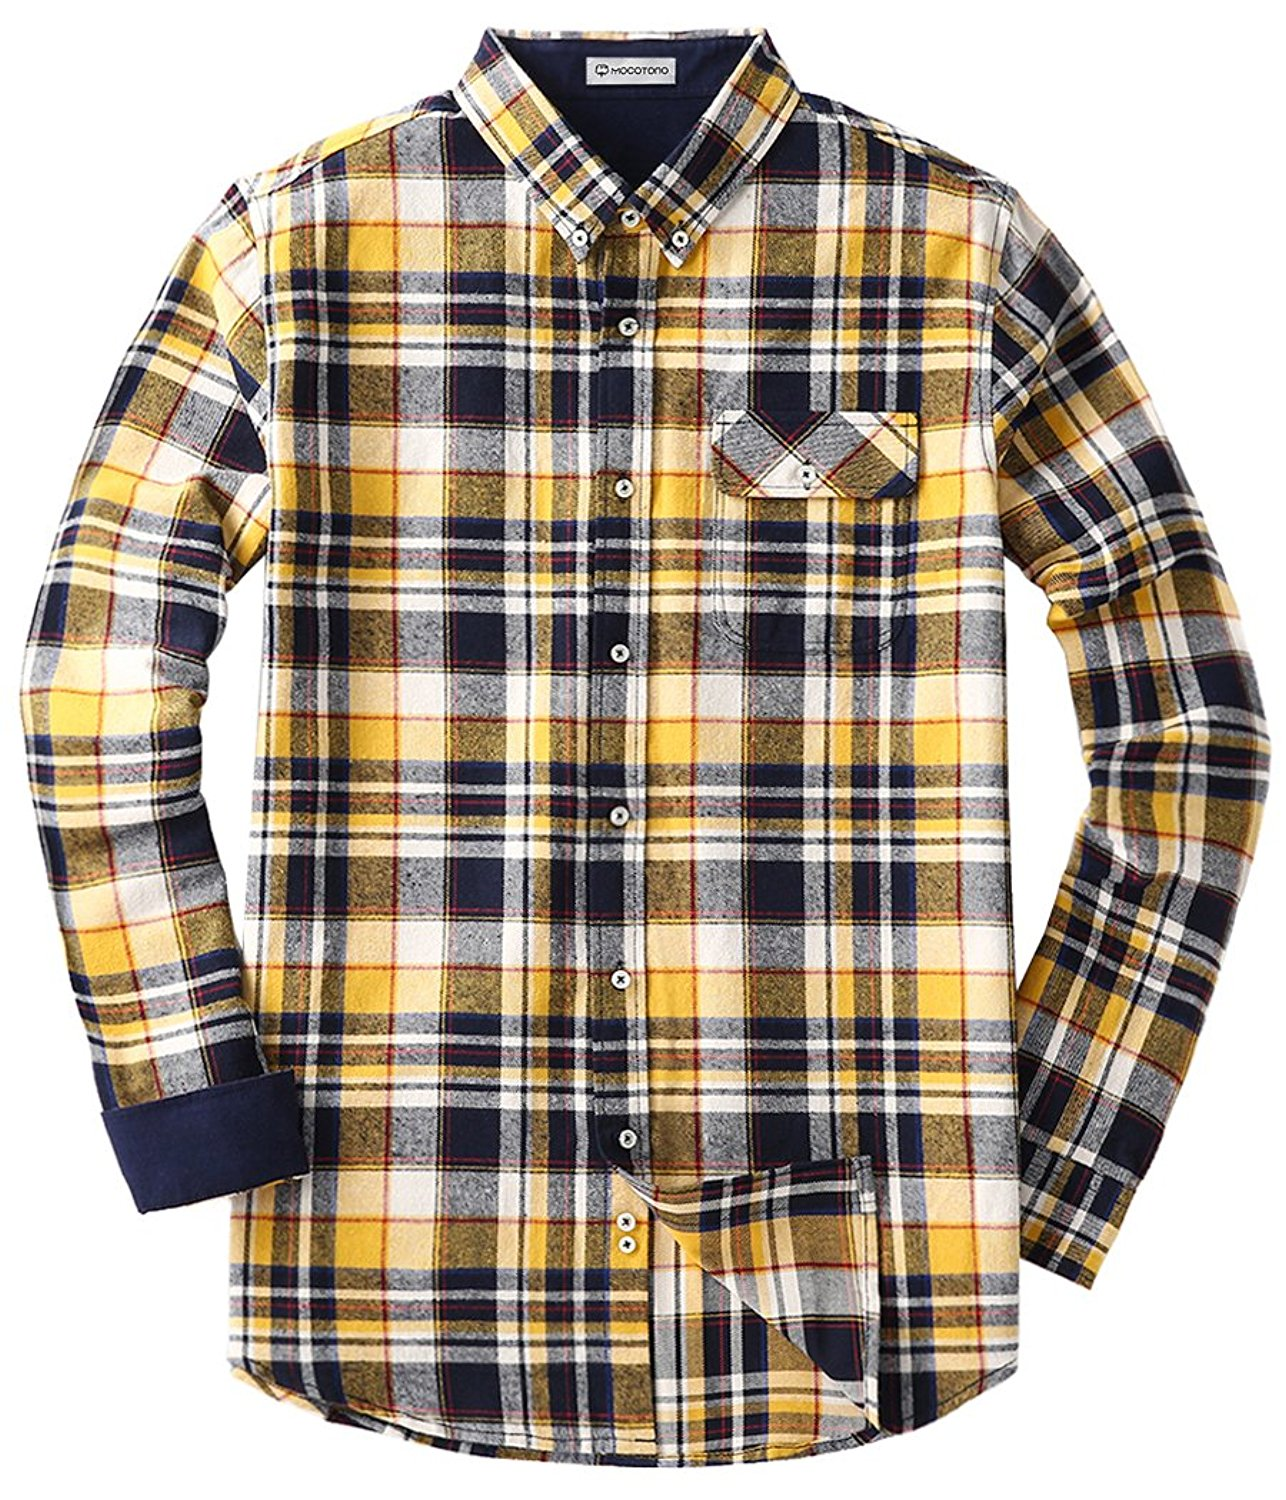 Amazon.com: Men's Long Sleeve Flannel Plaid Dress Shirt Western Button Down Shirts: Clothing